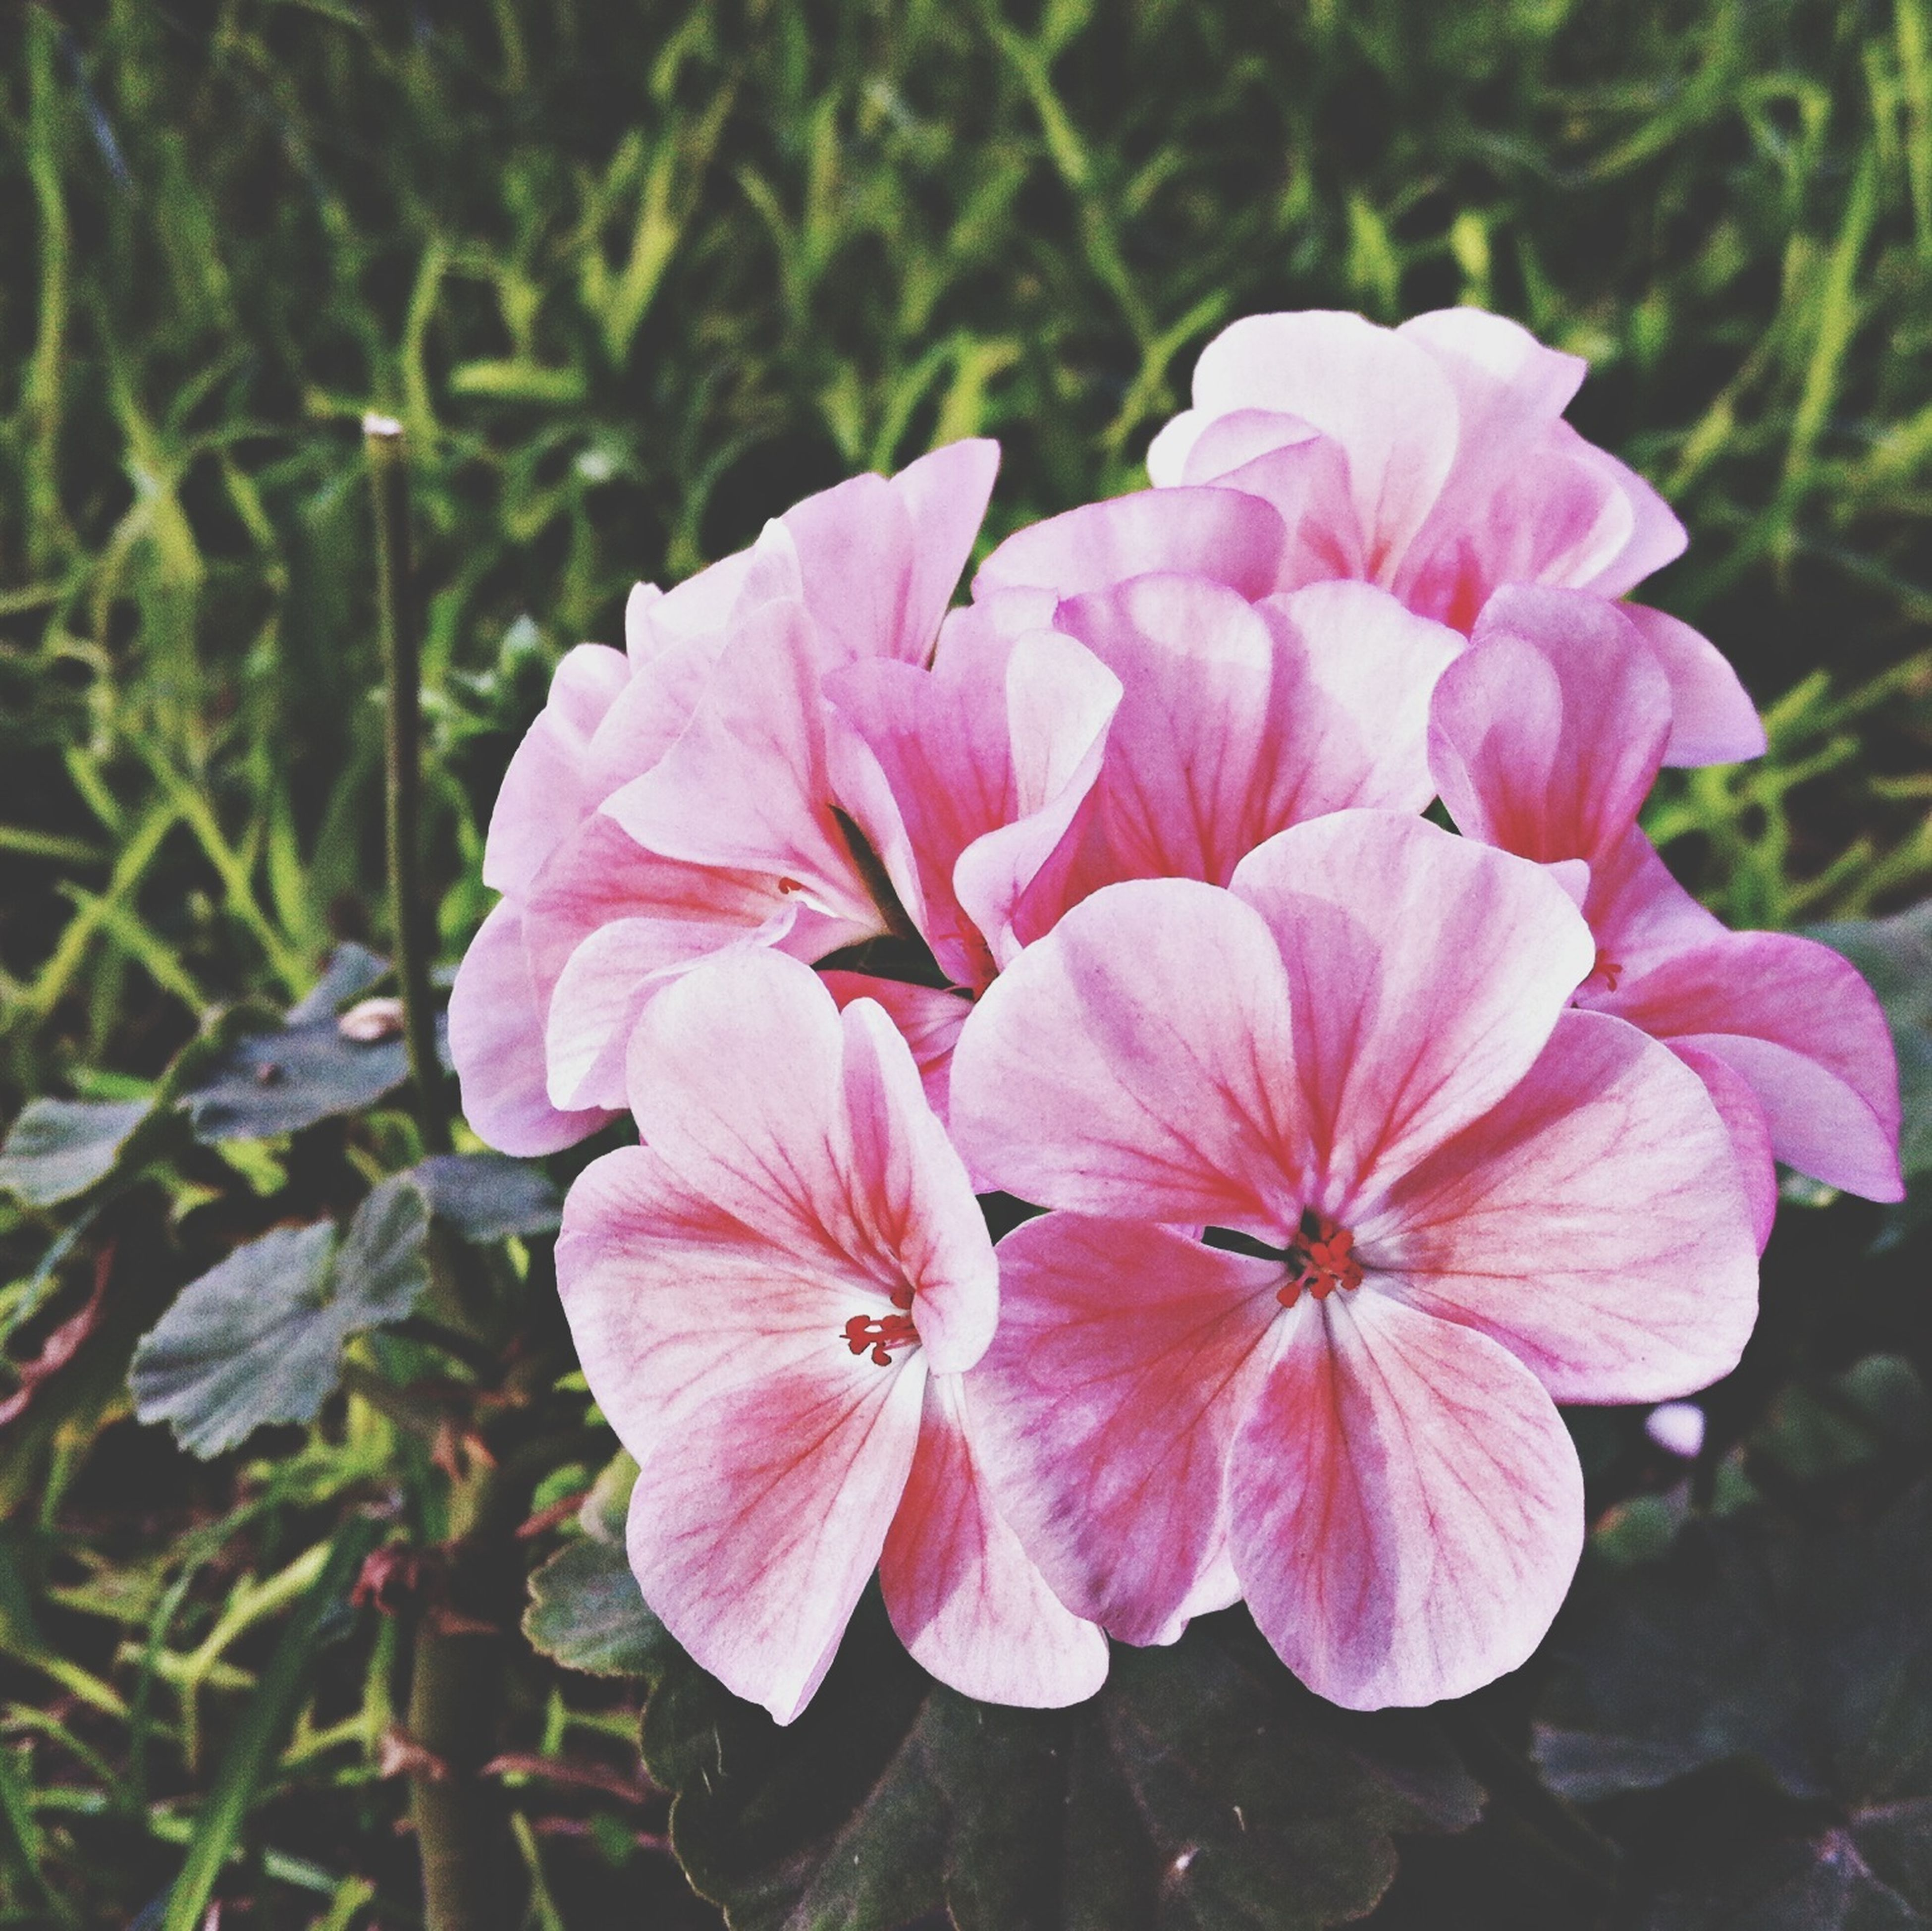 flower, petal, freshness, fragility, flower head, pink color, growth, beauty in nature, close-up, focus on foreground, blooming, nature, plant, in bloom, day, outdoors, high angle view, pink, stamen, park - man made space